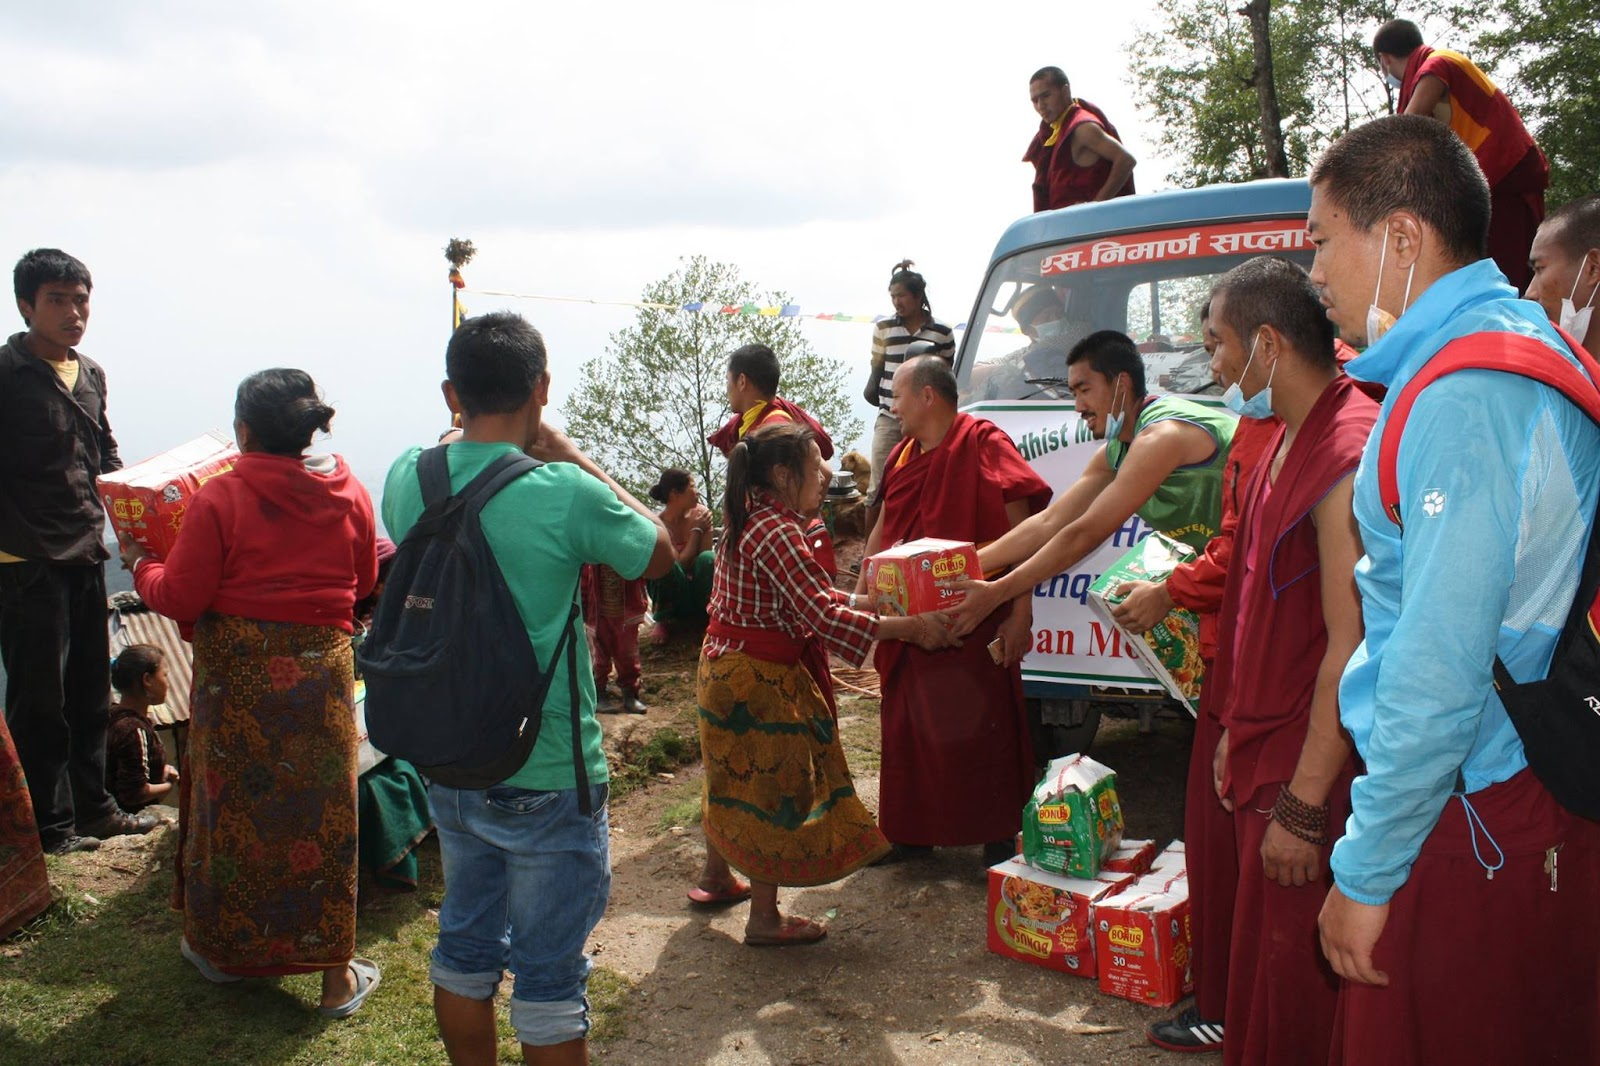 Kopan monks delivering supplies to families in need in the Kathmandu area, Nepal, 30 April 2015.